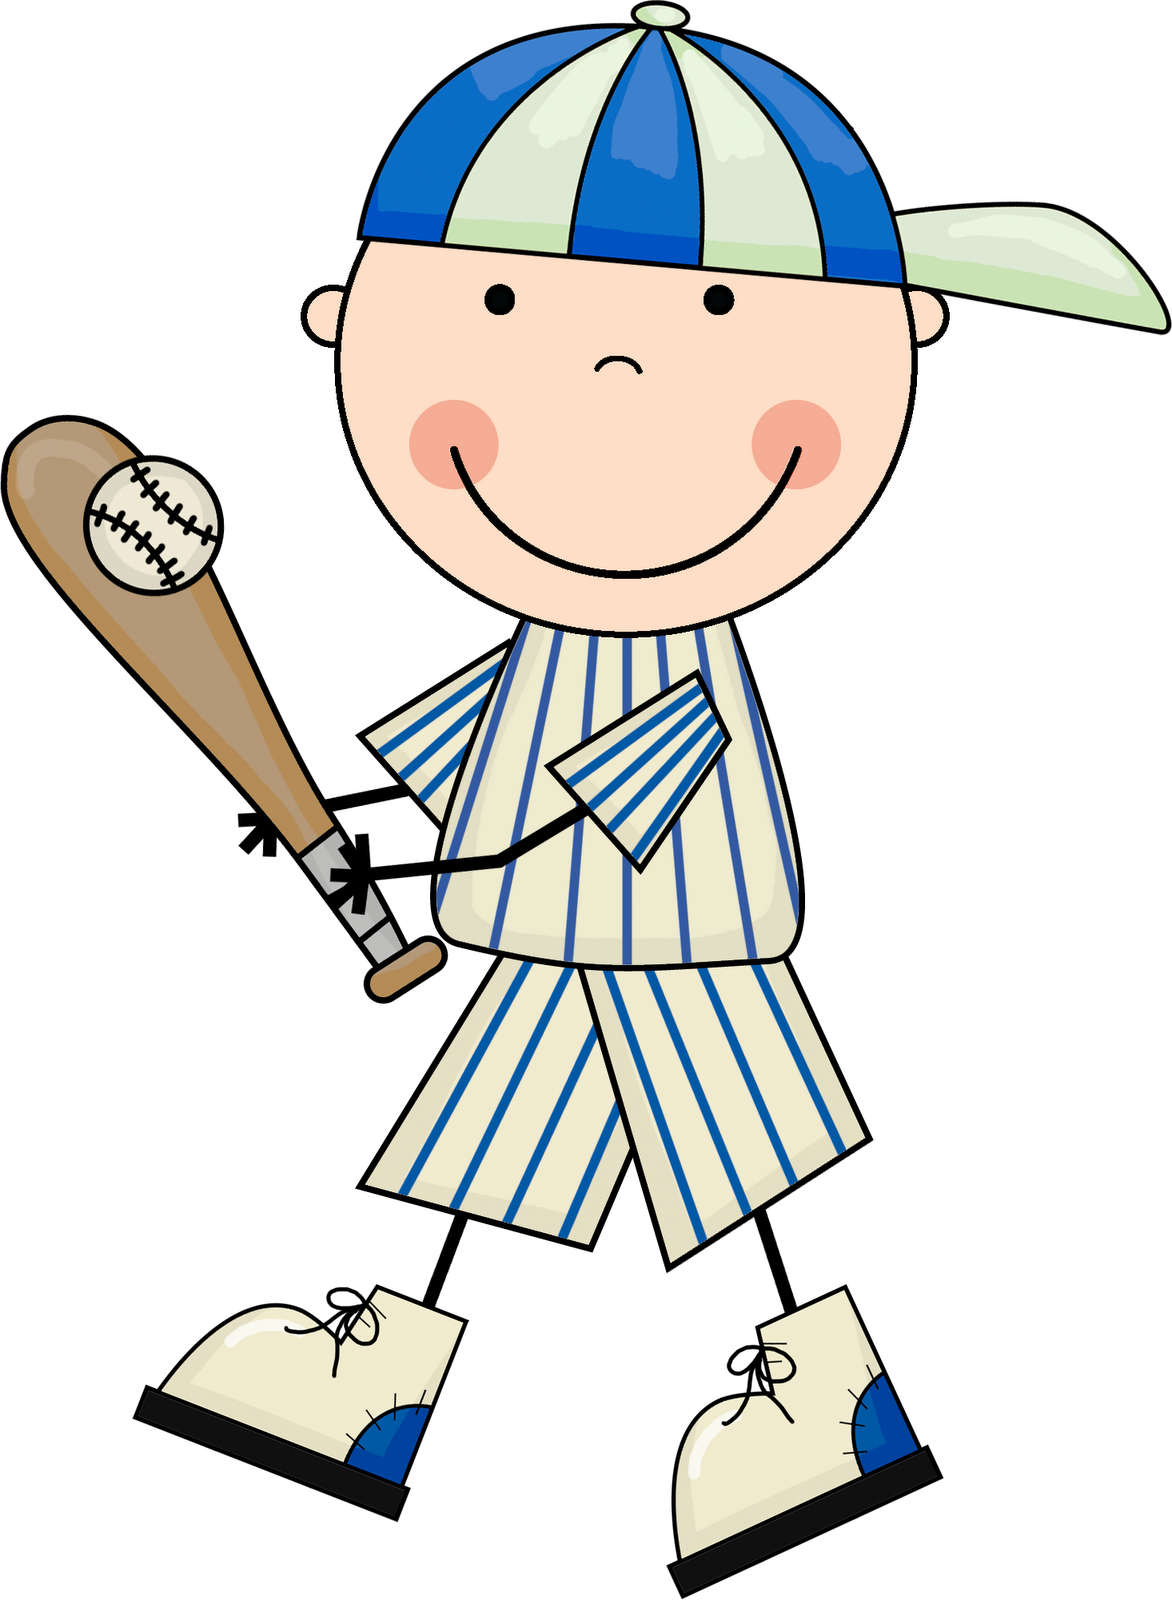 Chalkboard clipart baseball free download jpg stock Baseball borders clipart kid - Clipartix jpg stock